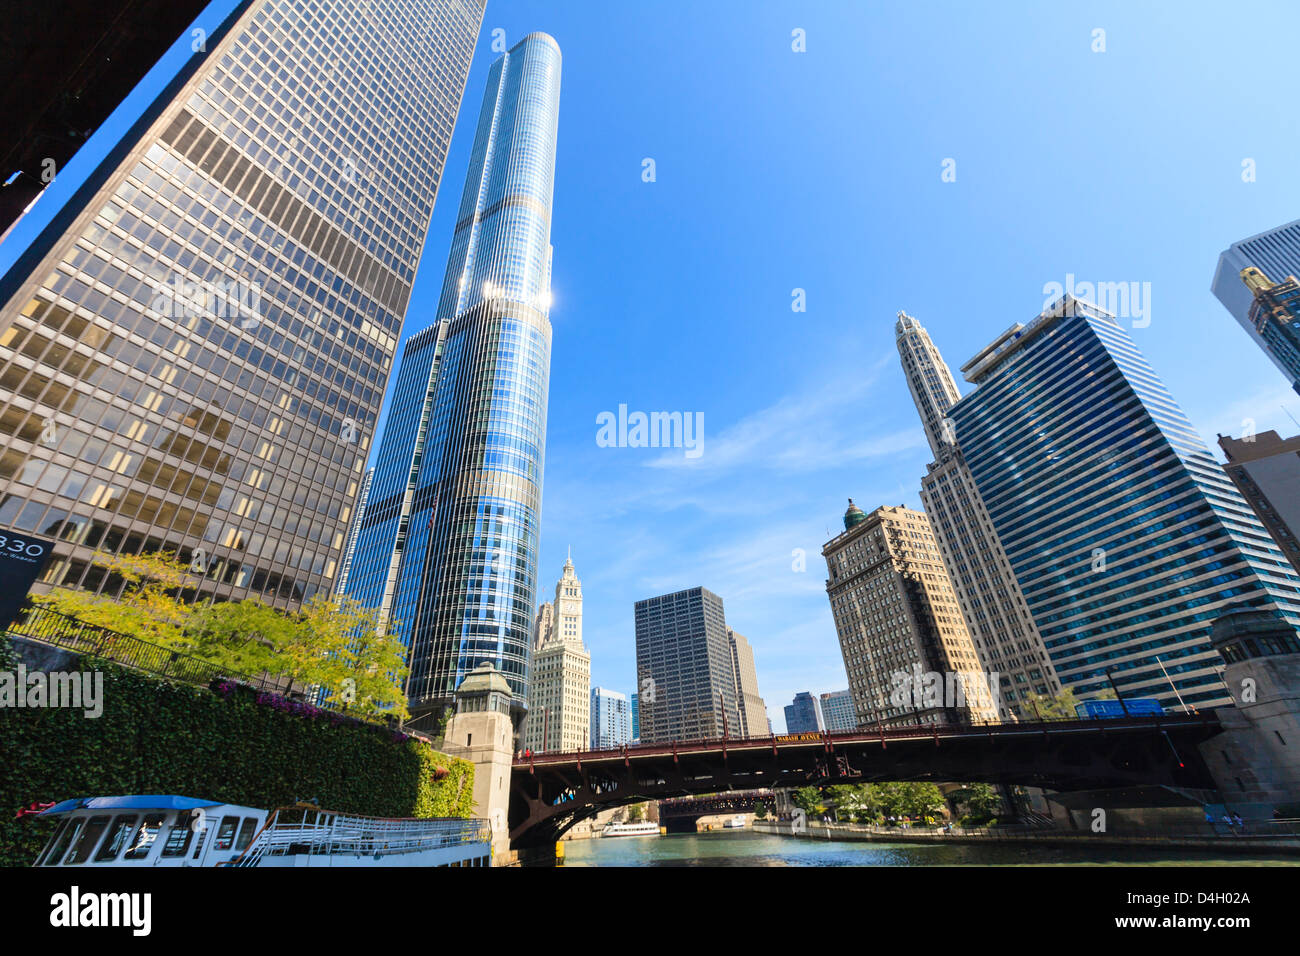 Skyscrapers along the Chicago River, including Trump Tower, Chicago, Illinois, USA Stock Photo